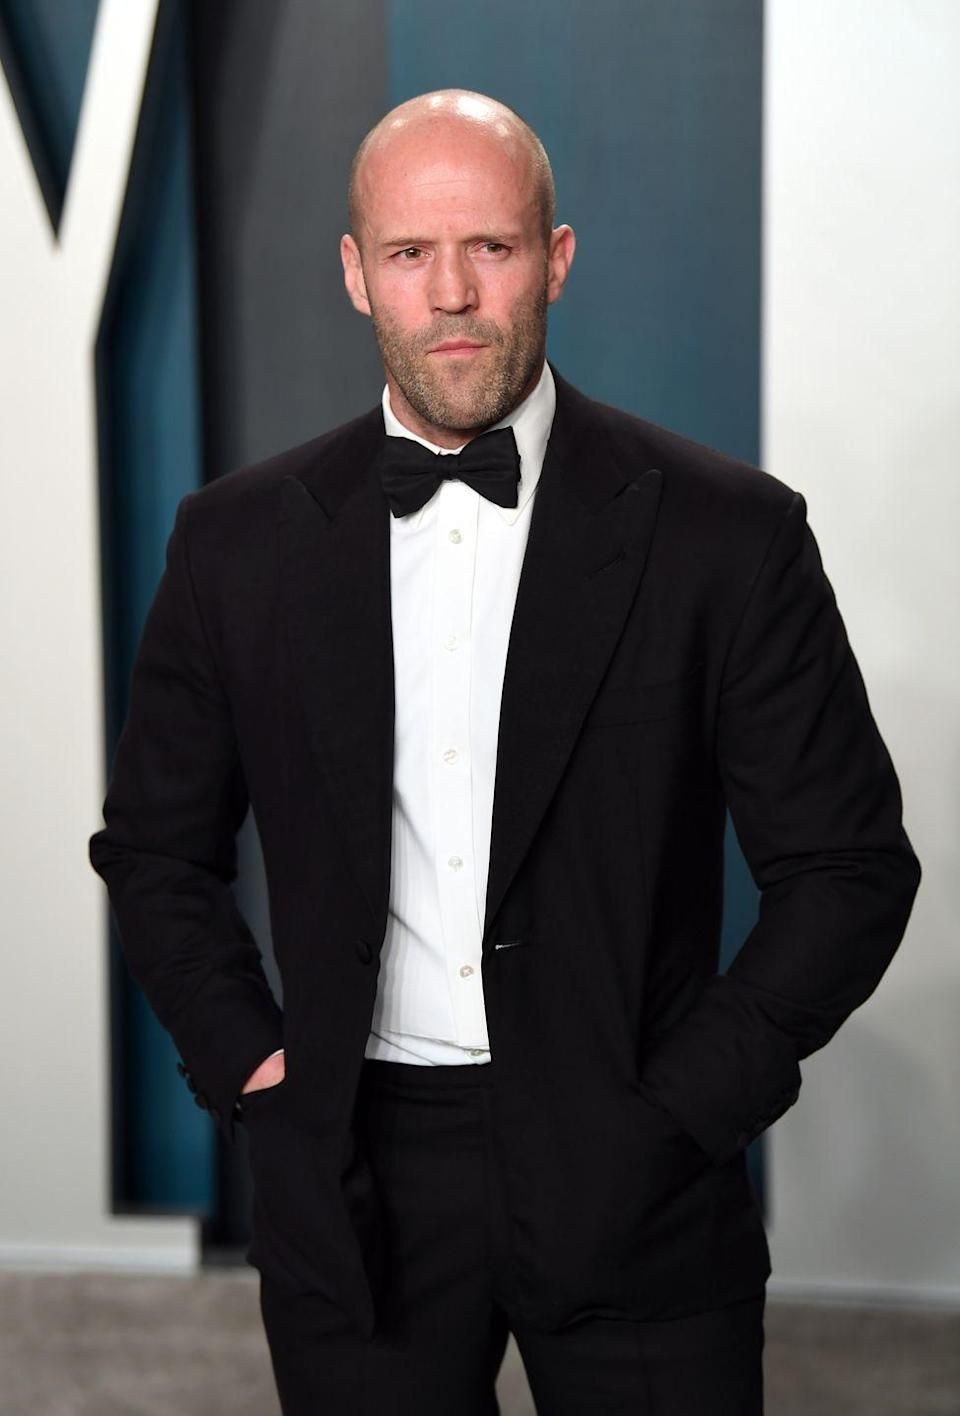 <p>Since being introduced in the franchise, Statham has been one of the lead antagonists of the films. In 2019, he starred in <em>Hobbs and Shaw </em>with Dwayne Johnson and he appears in <em>F9: The Fast Saga. </em> </p>